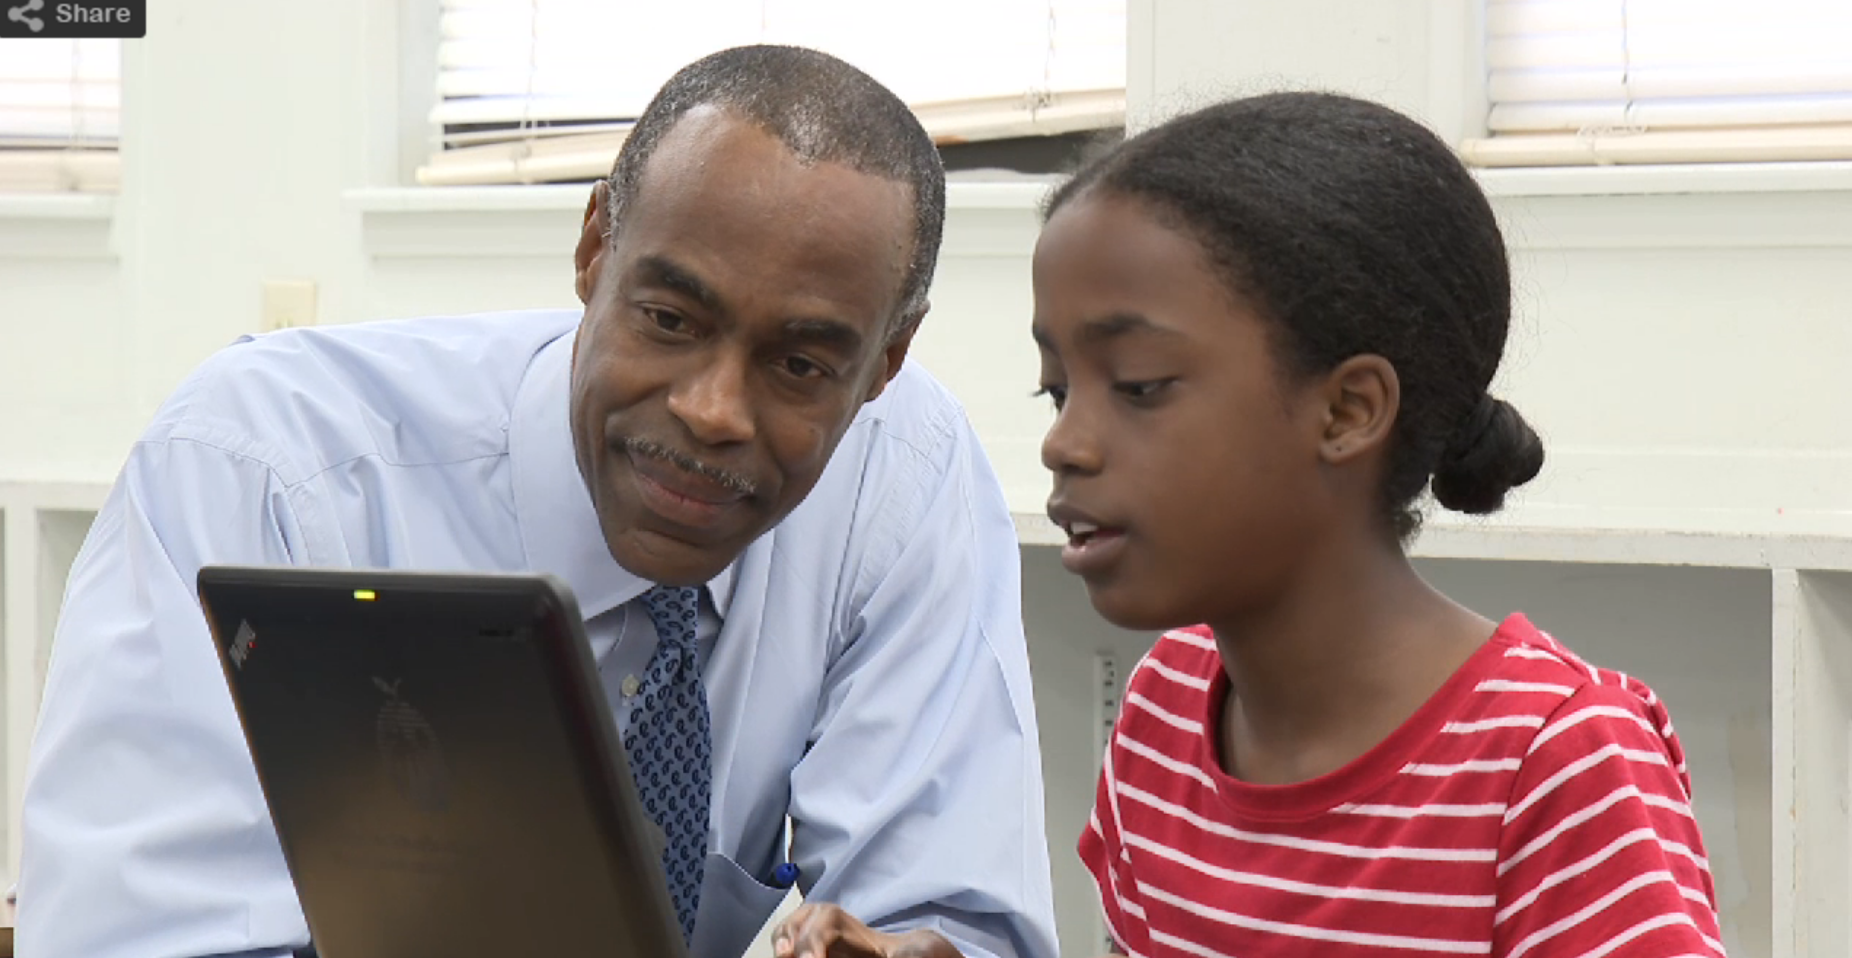 Superintendent Runcie with a student looking at a laptop